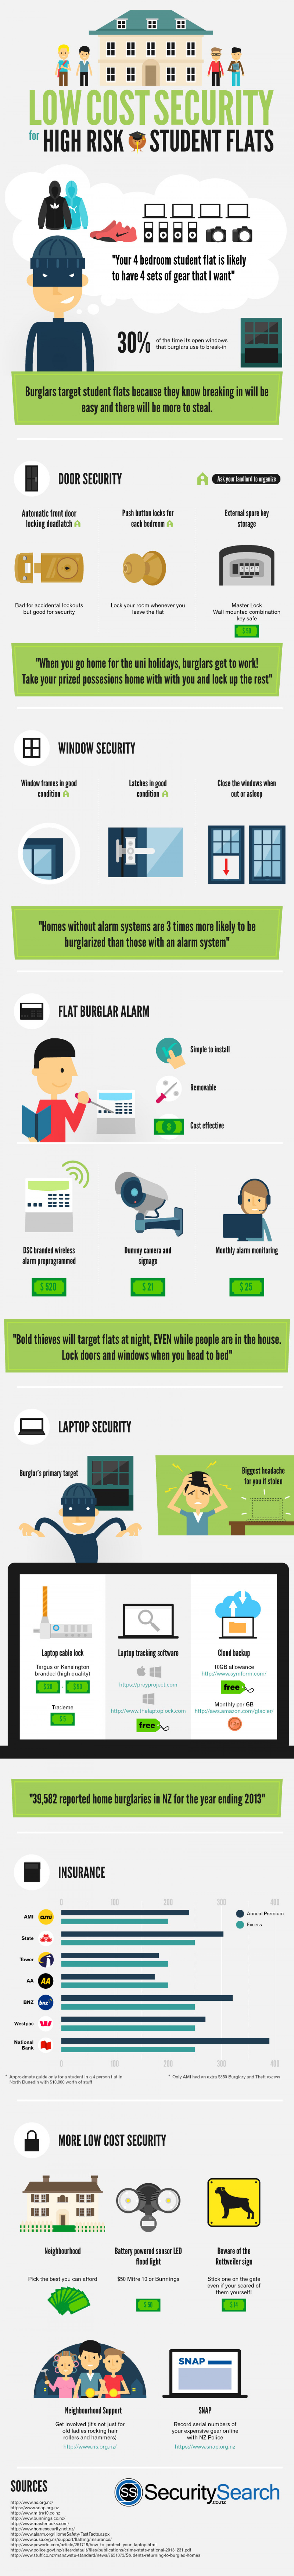 Low Cost Security for High Risk of Student Flats  Infographic